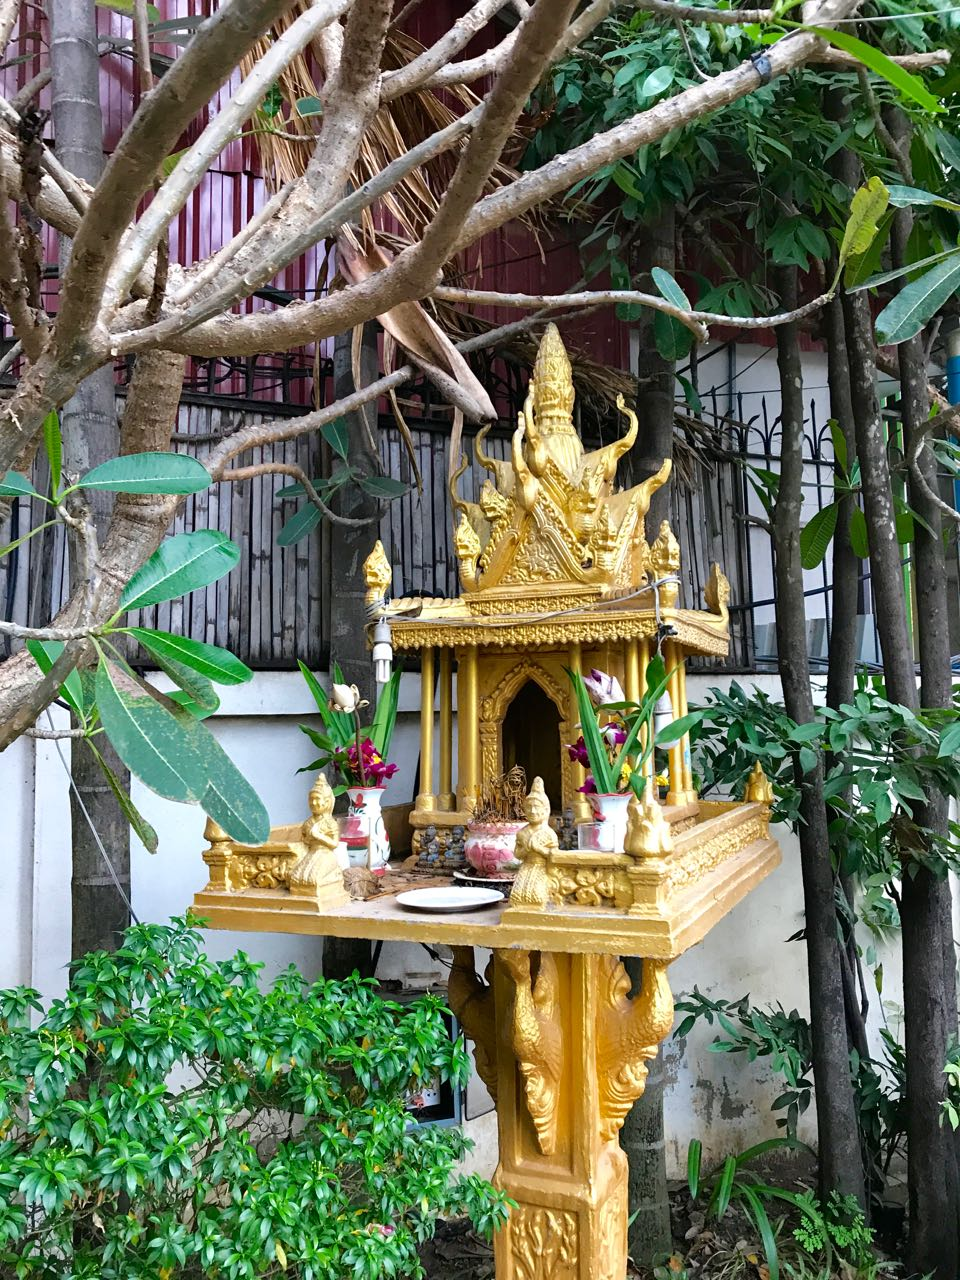 Usually placed at the corner of a property of both of homes & businesses, spirit houses such as this one in Cambodia near our Khmer house intend to house spirits who may wreak havoc on people if they aren't appeased in some way... usually by daily offerings of flower garlands, fruit or the burning of incense.